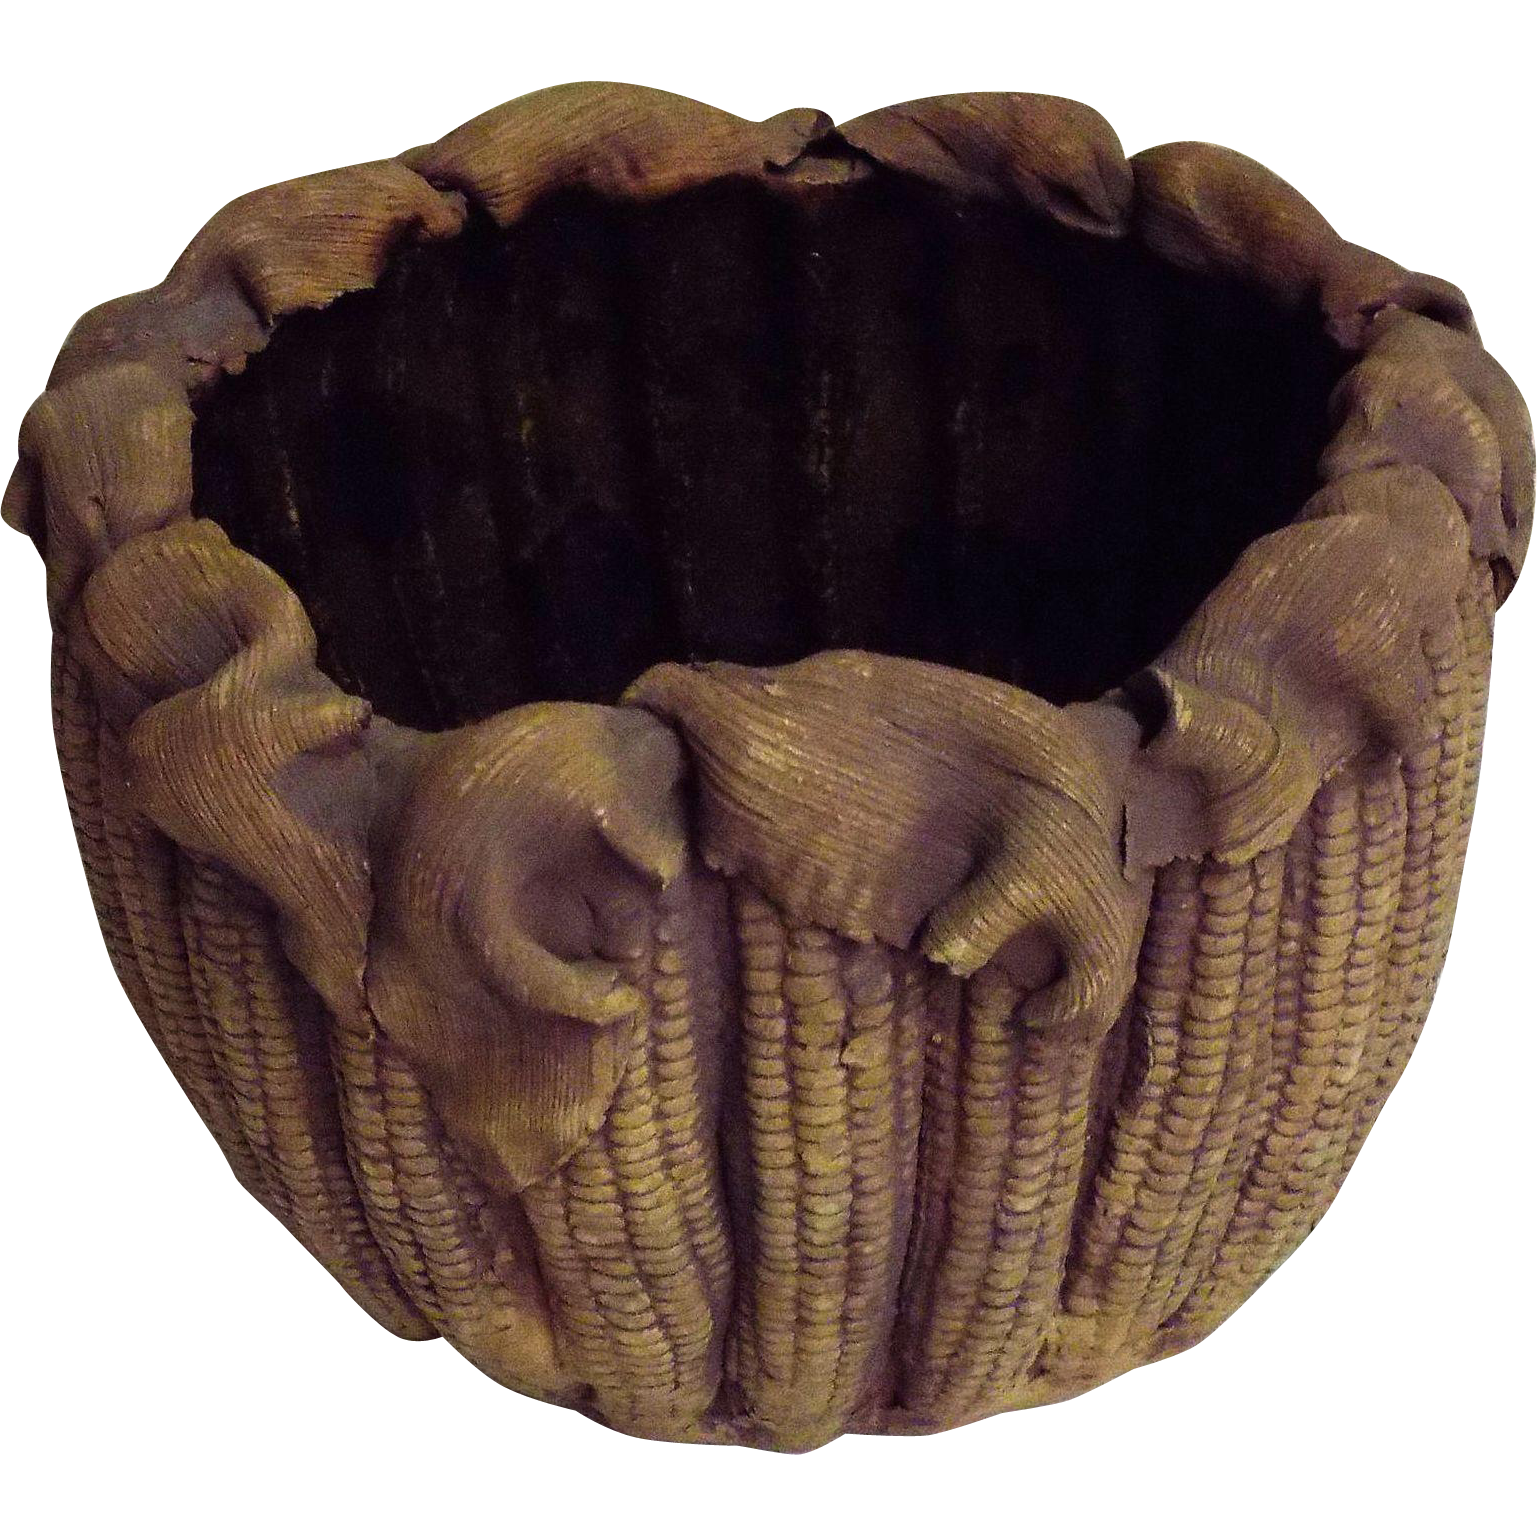 Corn In The Cobb Impression Clay Pottery Bowl By TERRAFIRMA NYC 1979